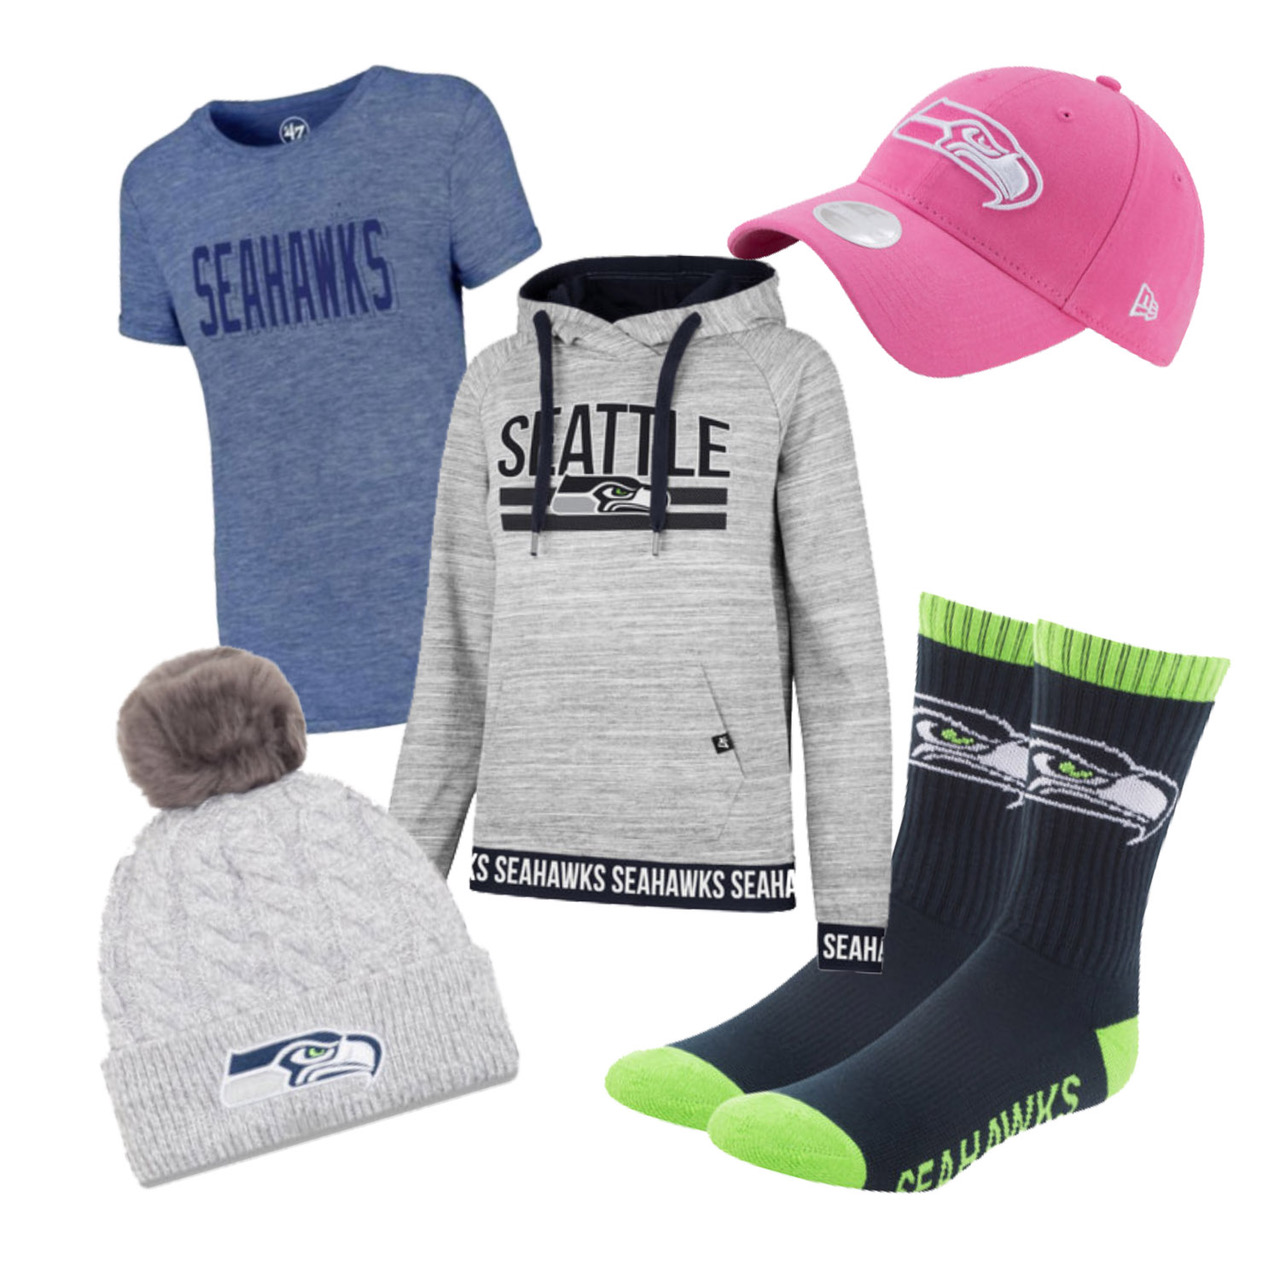 Seahawks Ultimate Fan Bundle for Women - X - Large